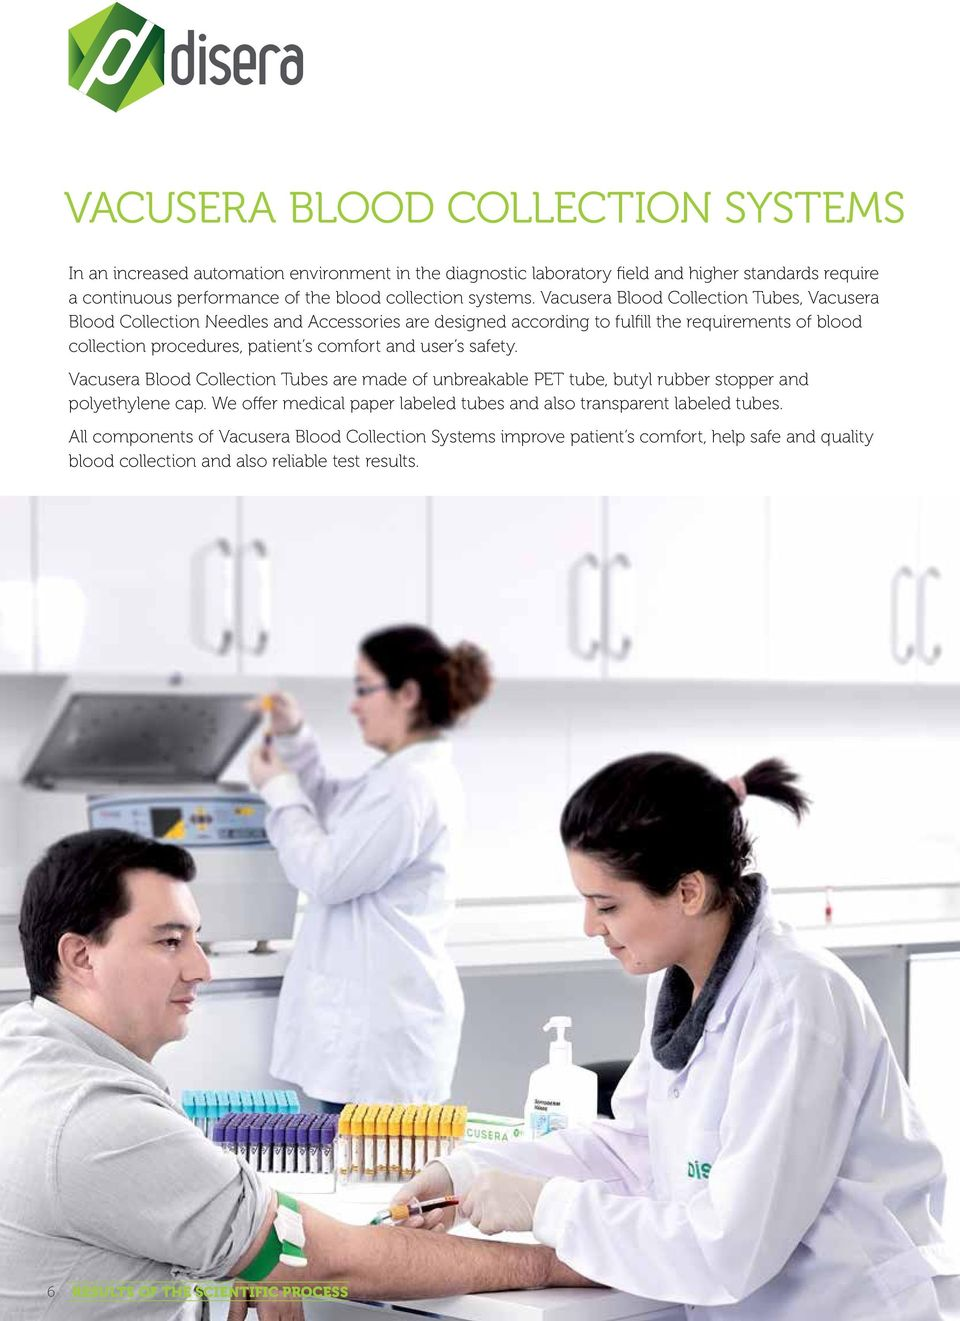 Vacusera Blood Collection Tubes, Vacusera Blood Collection Needles and Accessories are designed according to fulfill the requirements of blood collection procedures, patient s comfort and